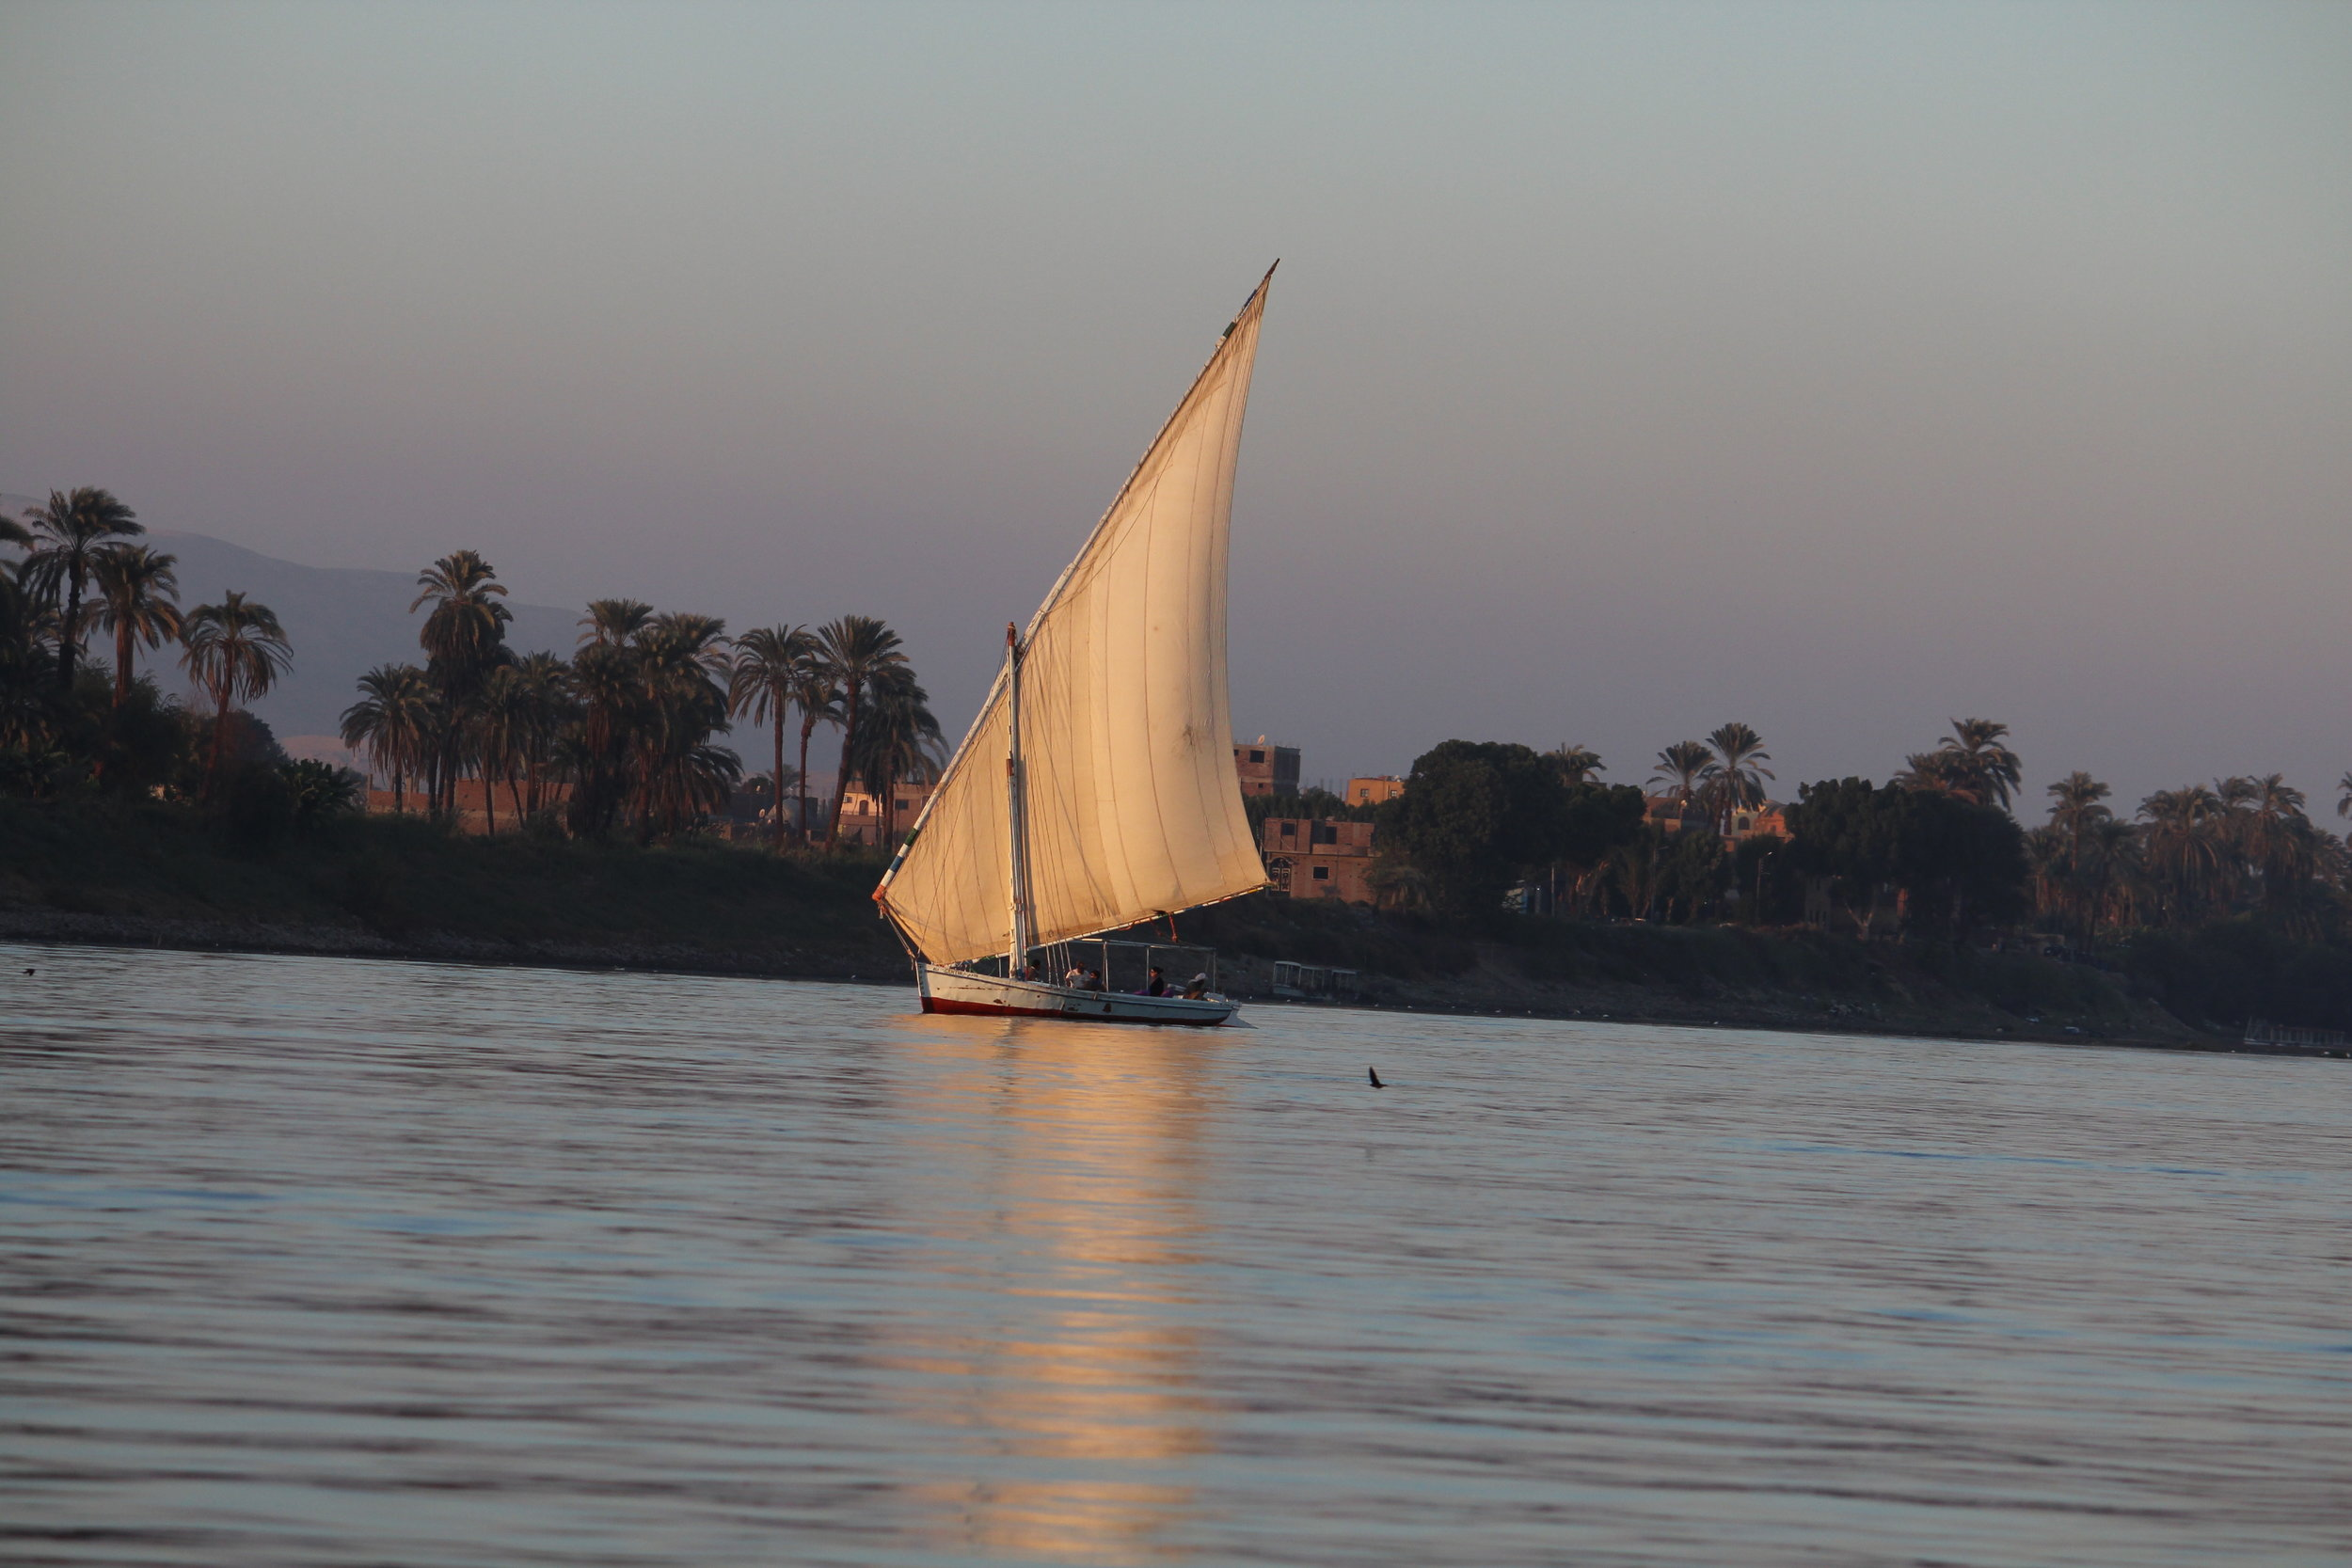 Egypt Nile Focus - 19 - 26 January 2020